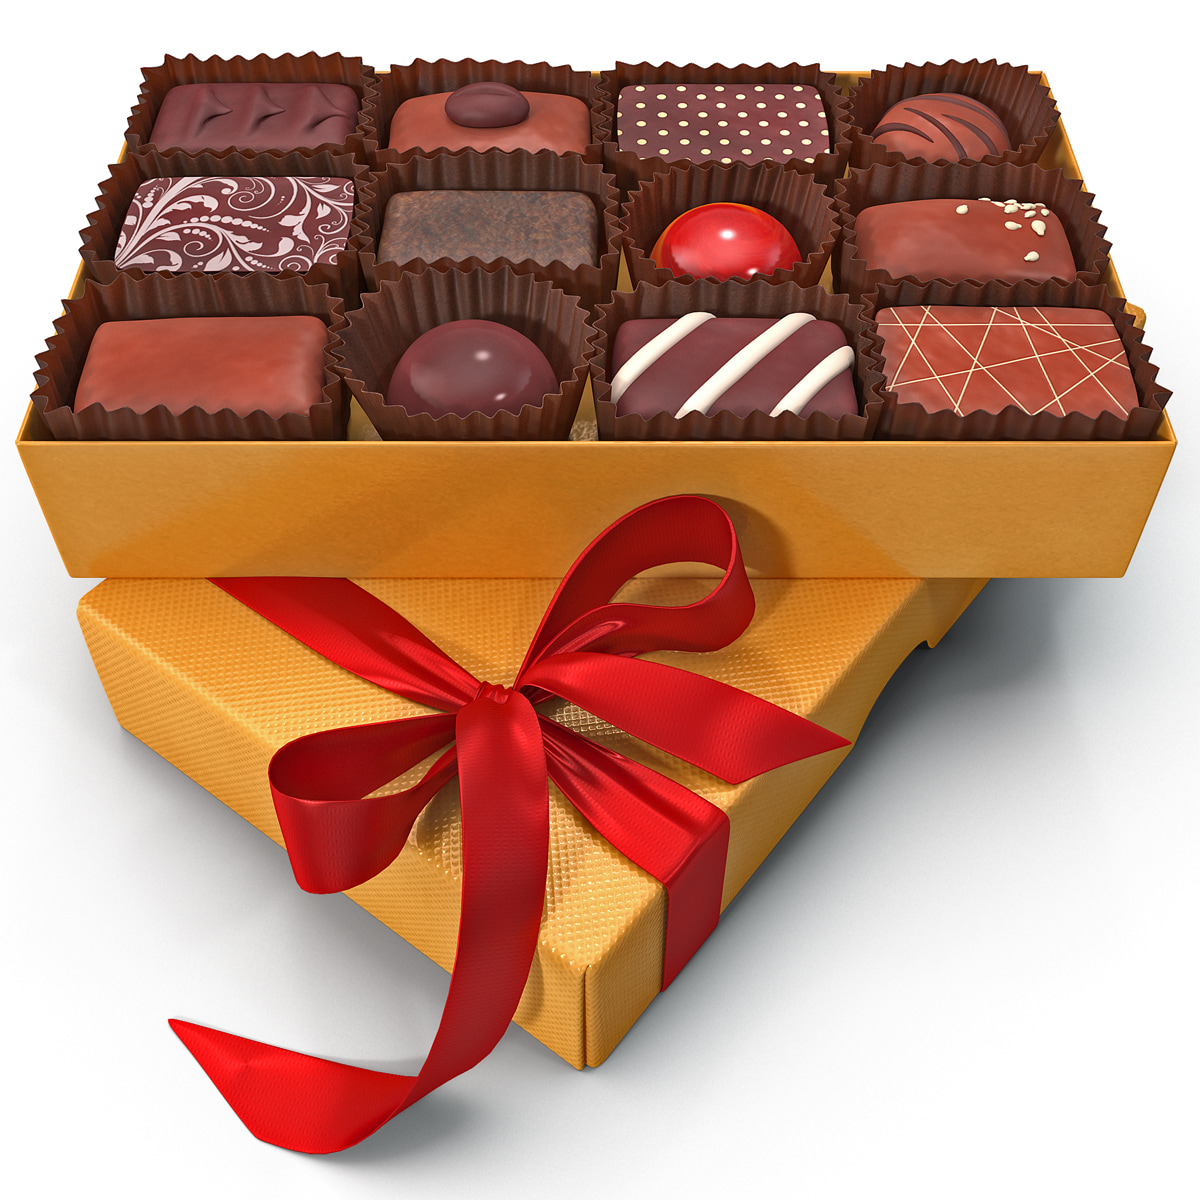 Box_of_Chocolates_001.jpg